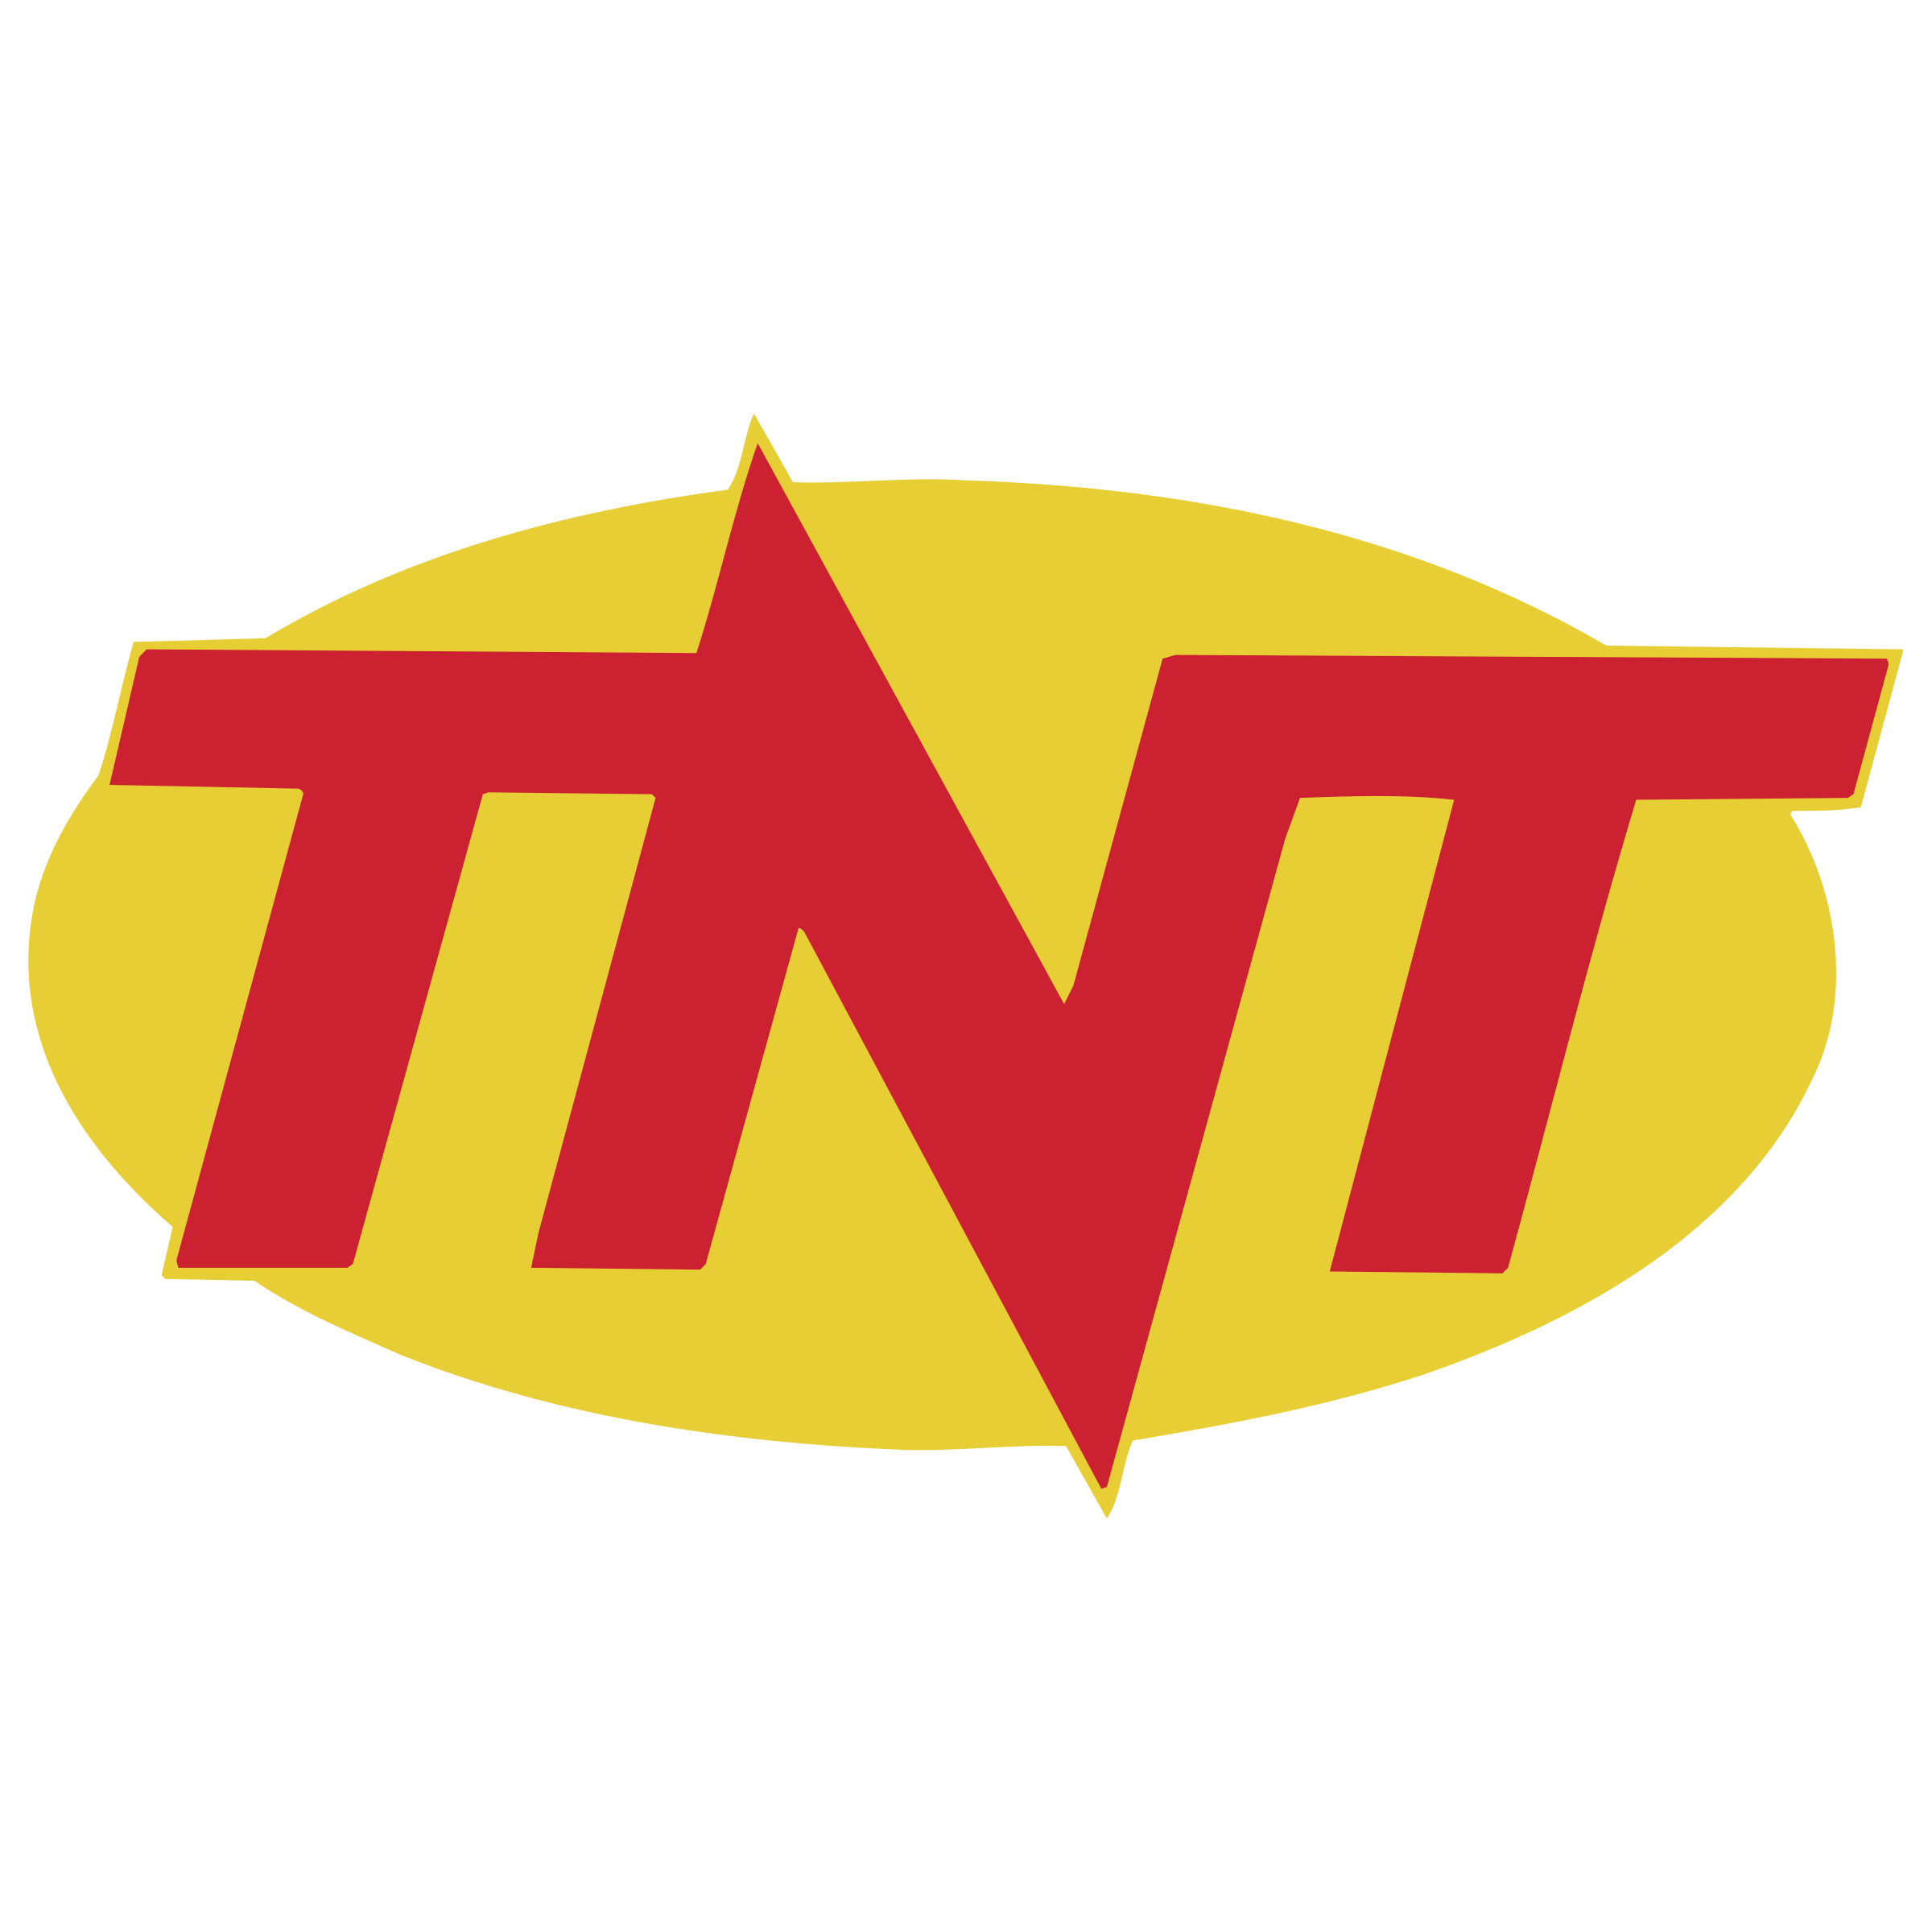 jpg download Tnt television png transparent. Vector 4 logo